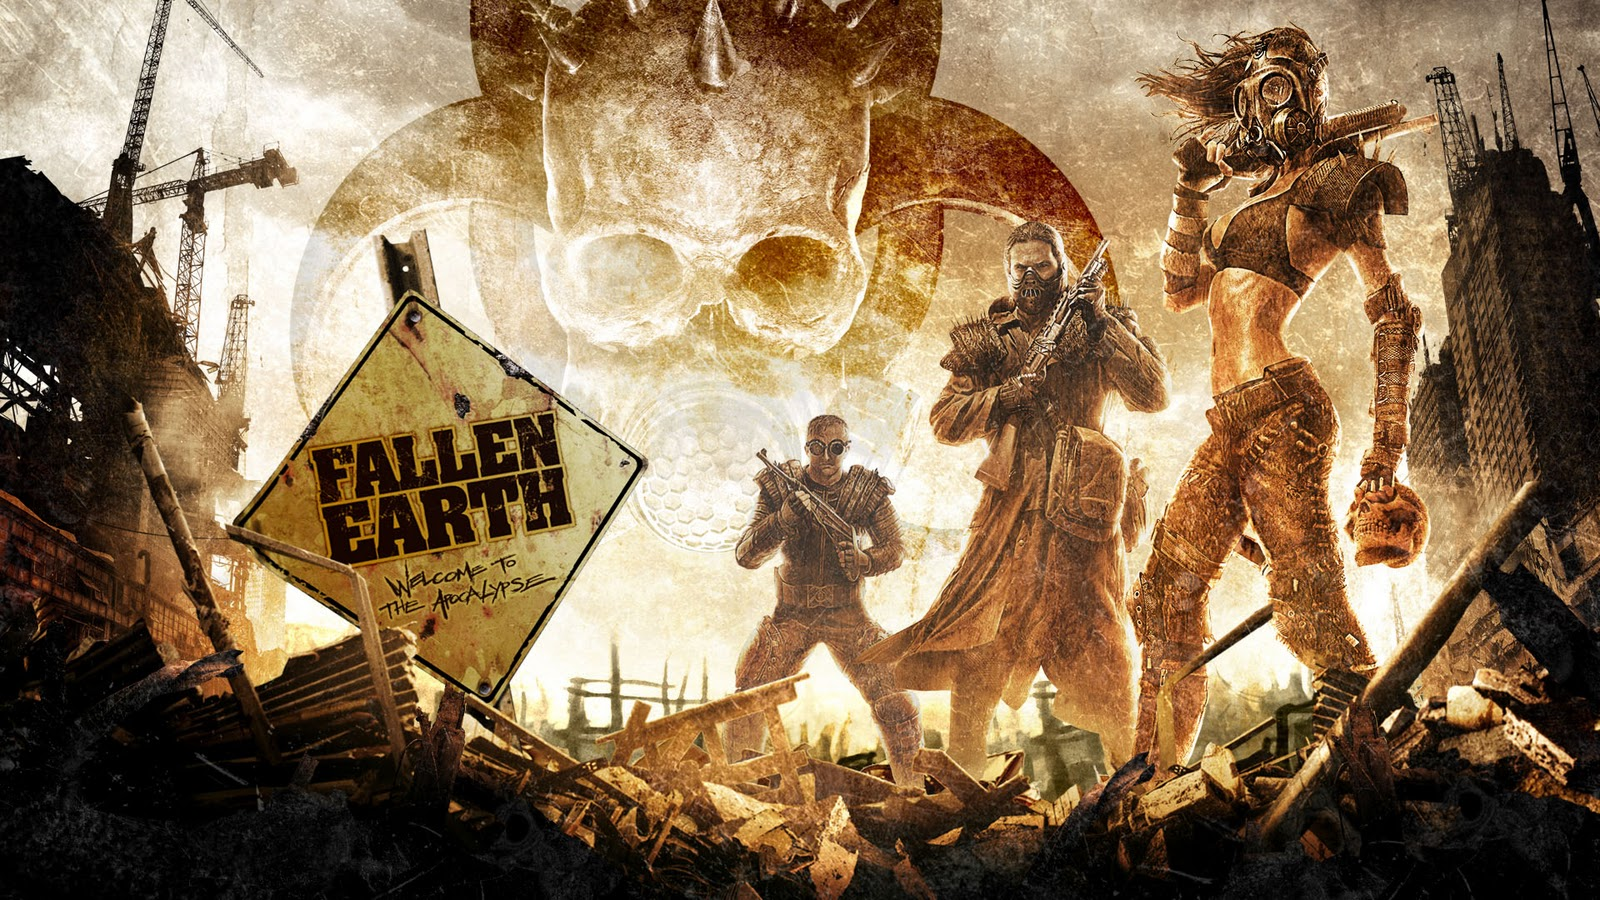 Fallen Earth HD Desktop Wallpapers Desktop Wallpapers 1600x900